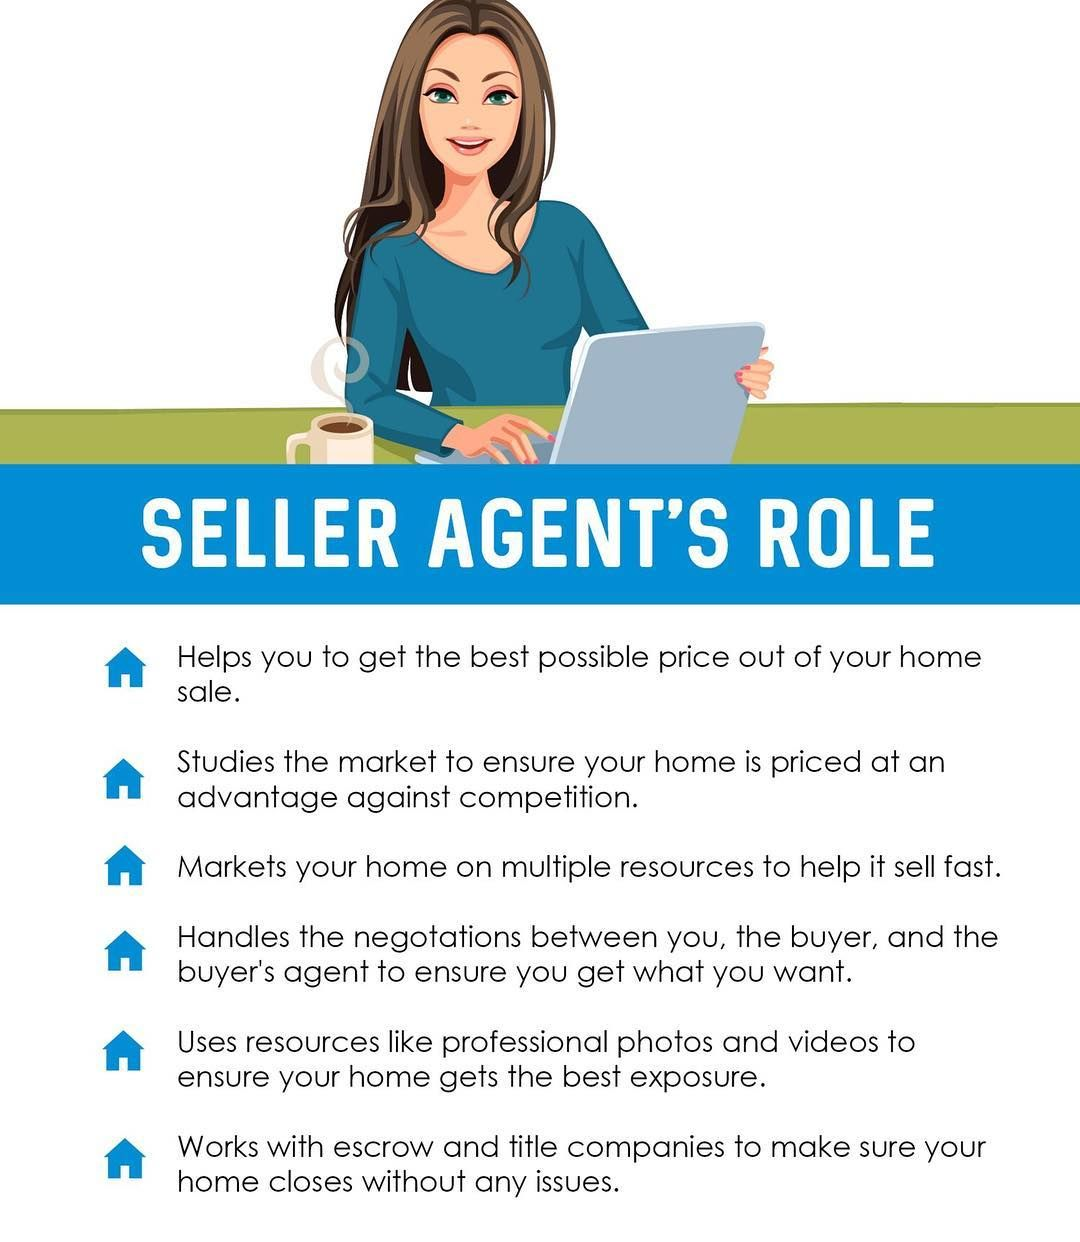 What Should A Listing Agent Provide This Is A Good Start Pensacola Realtor Realestat Real Estate Agent Marketing Real Estate Tips Real Estate Infographic